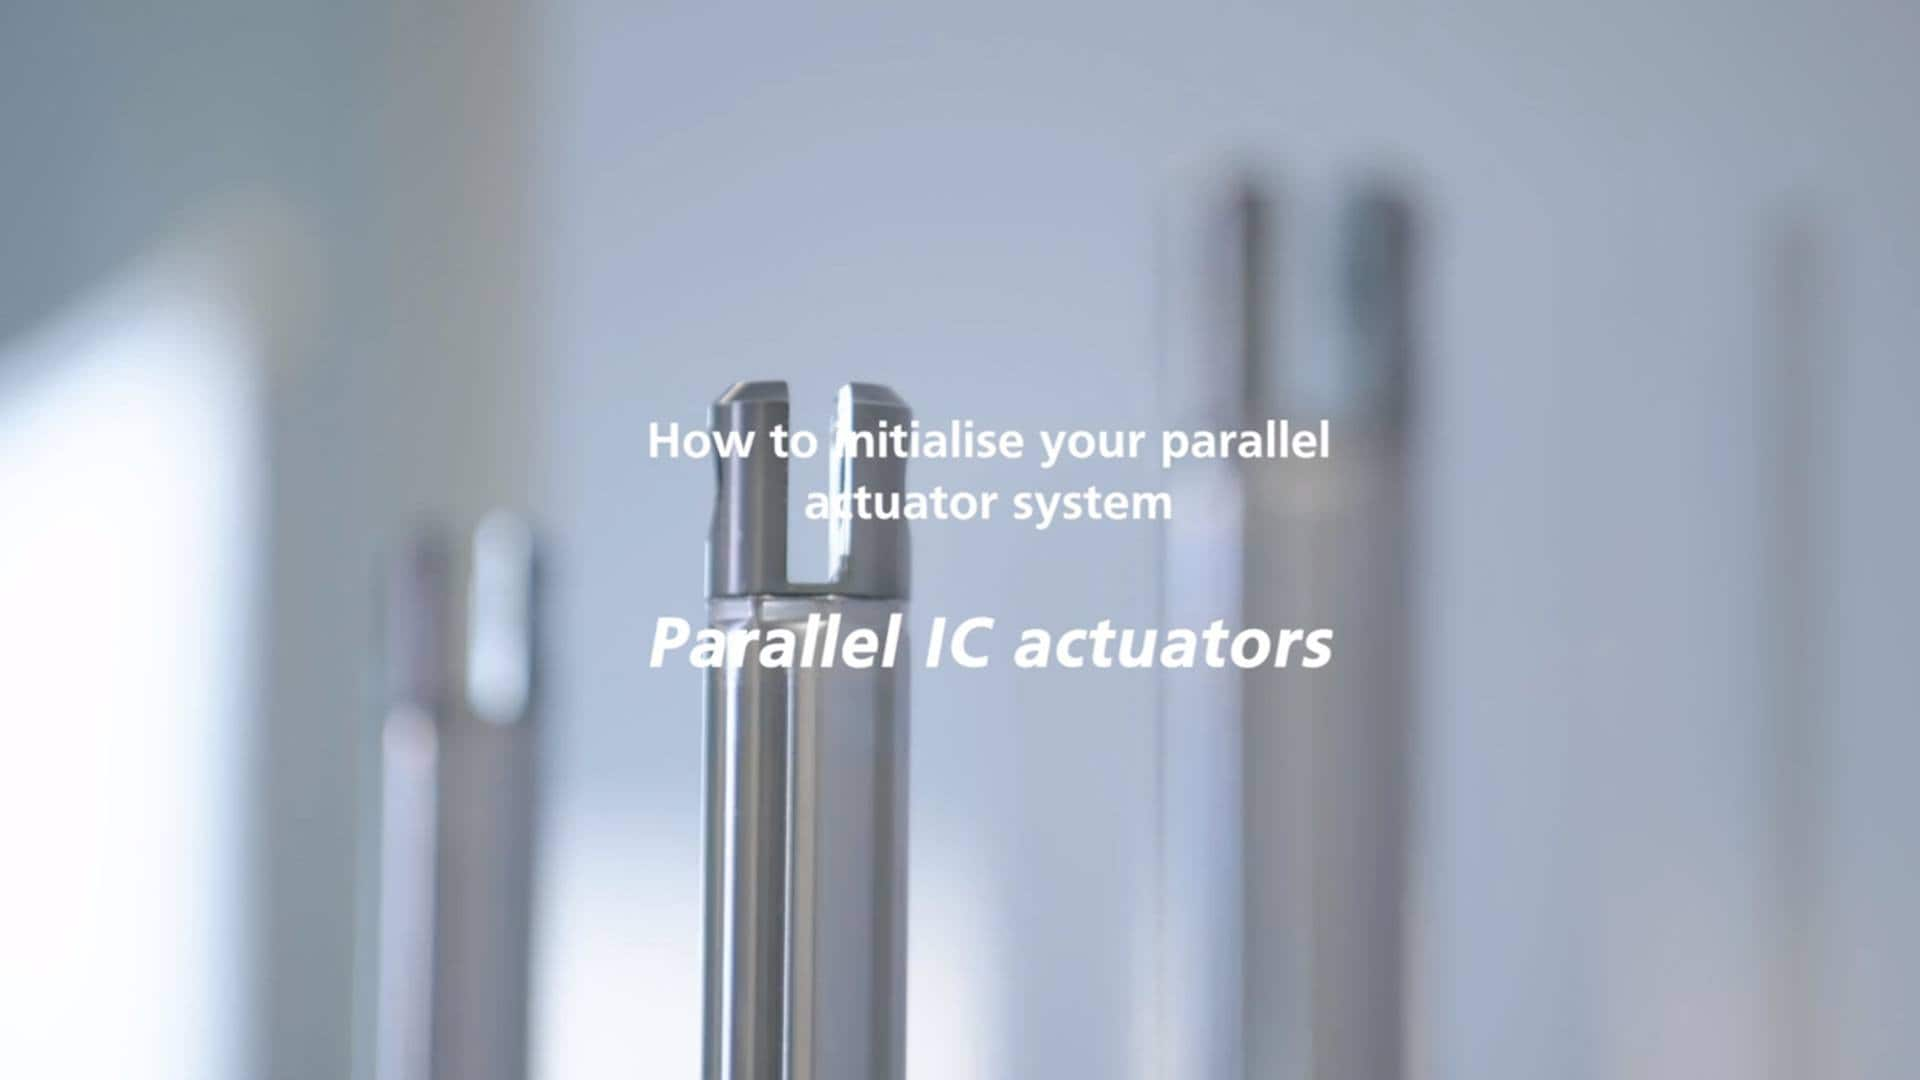 IC parallel actuator system - How to initialize the system